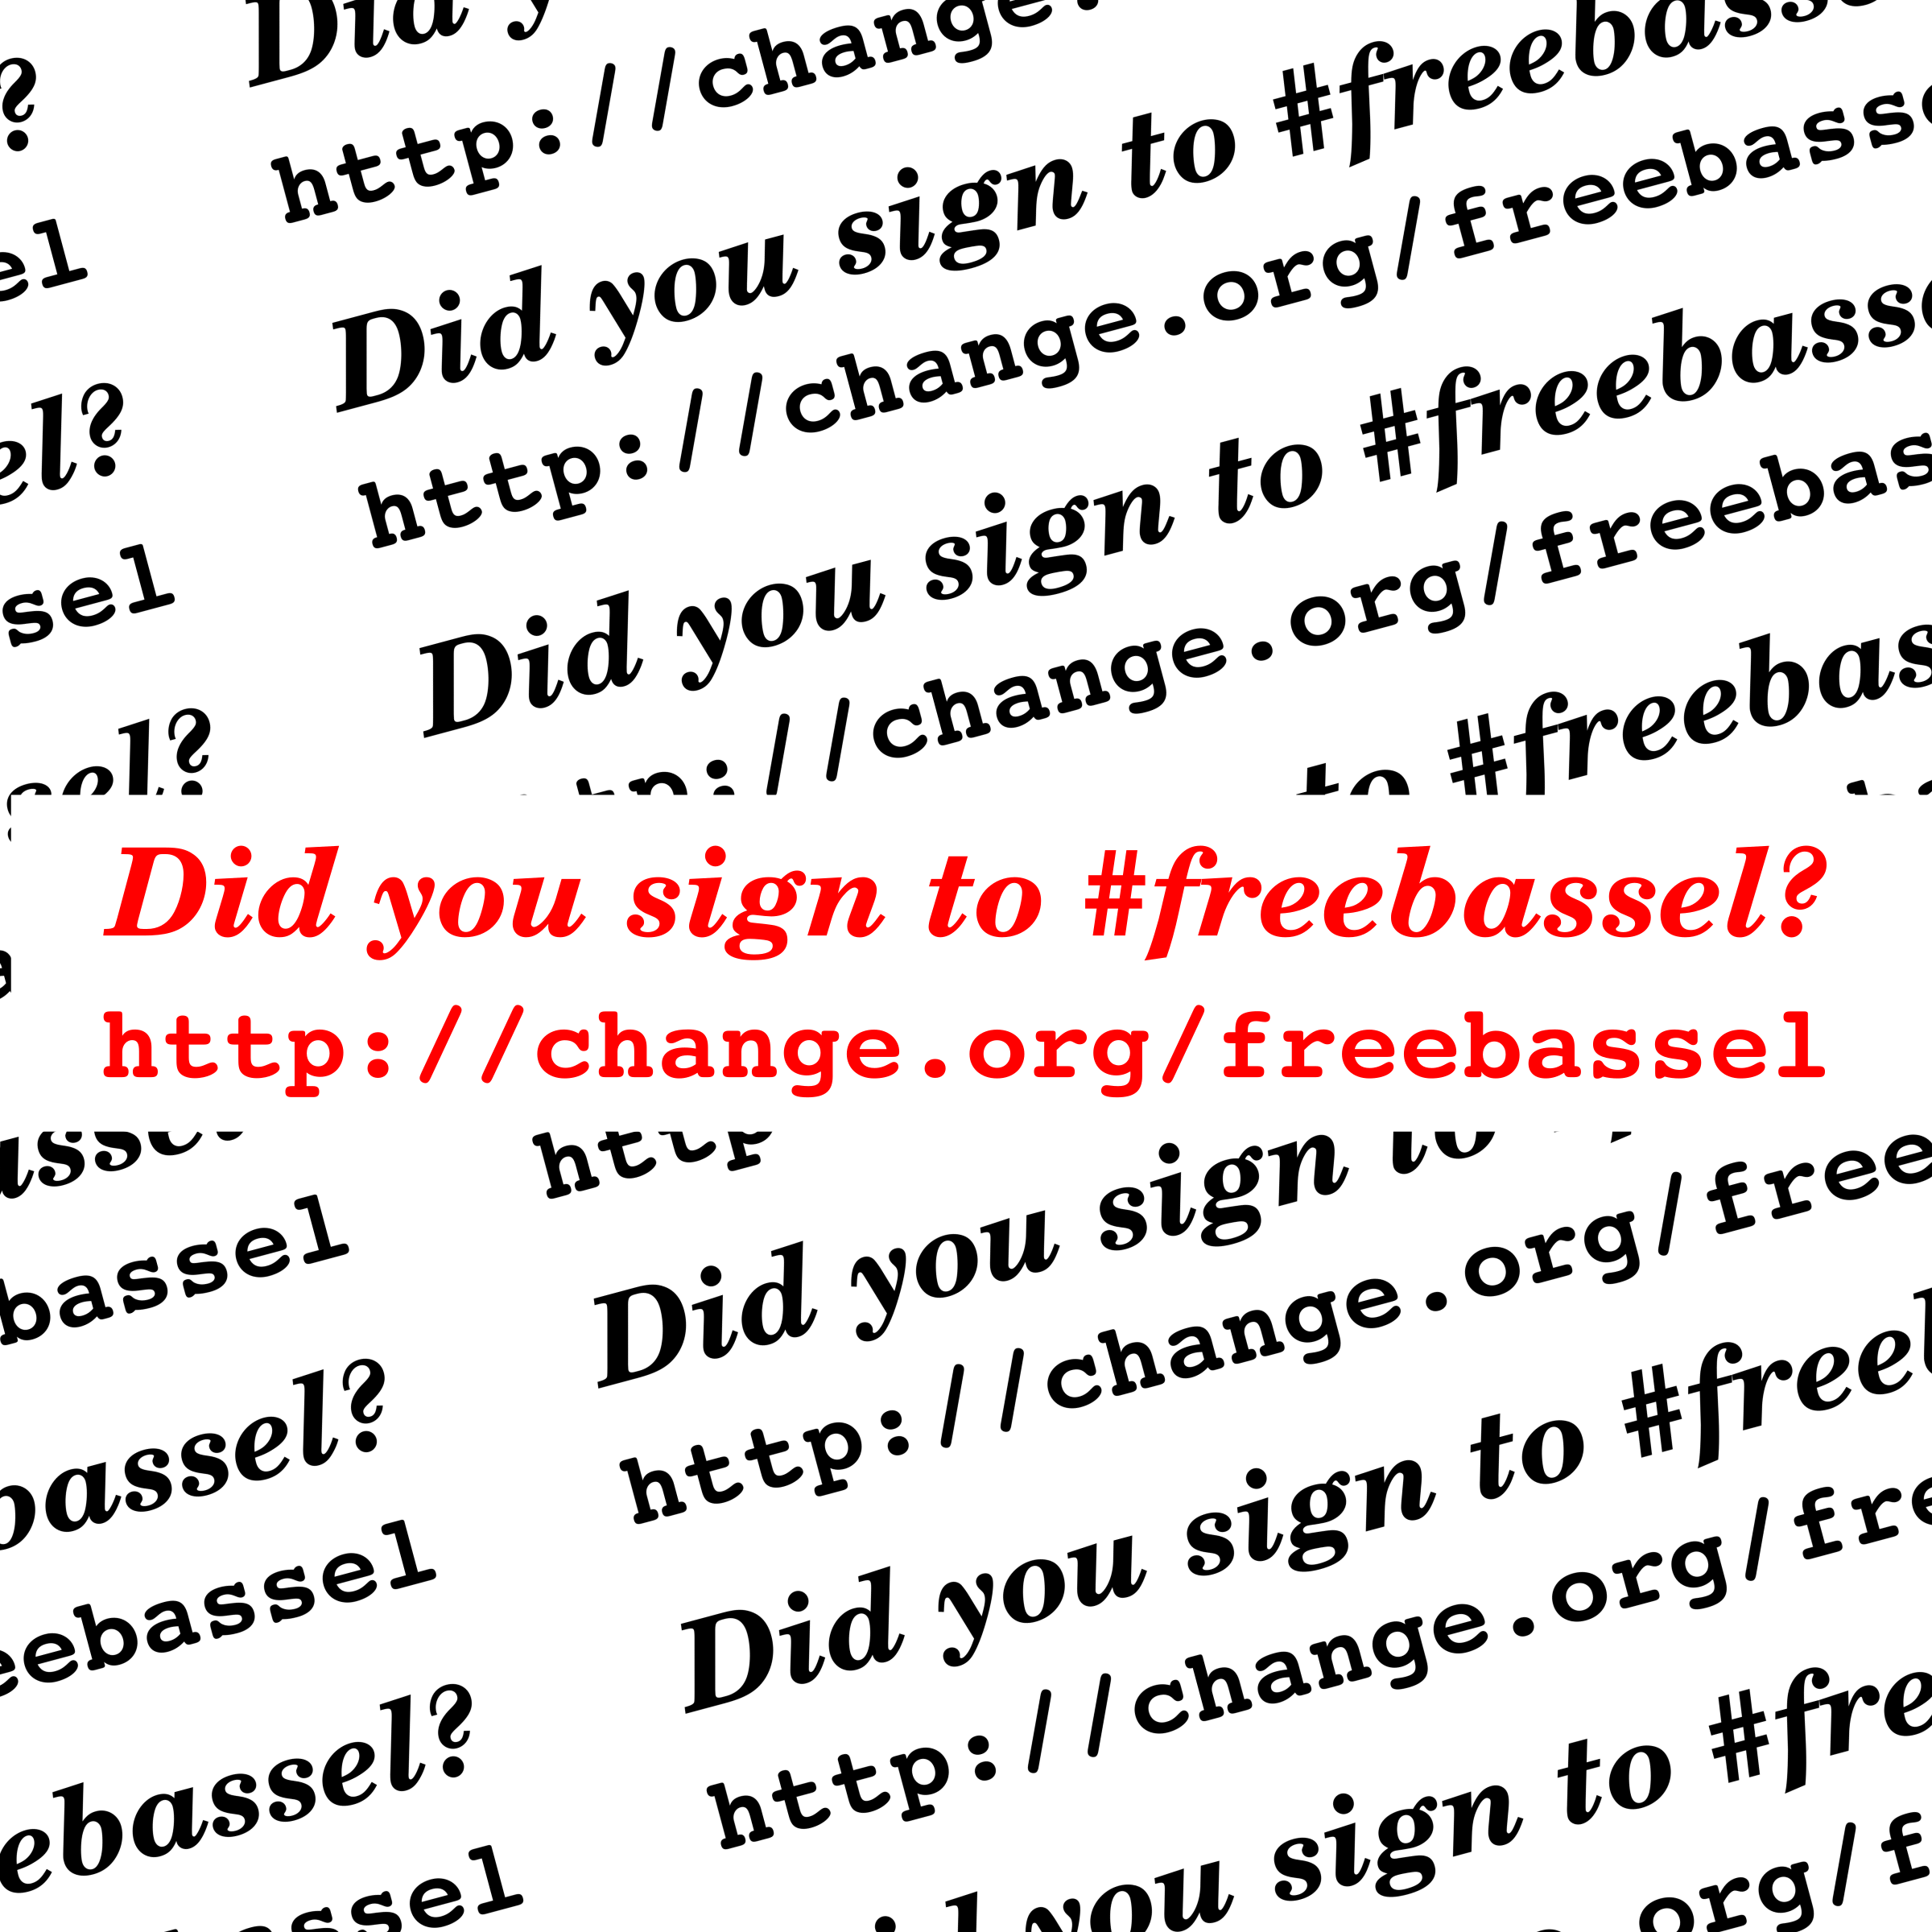 Sign to freebassel by openclipart